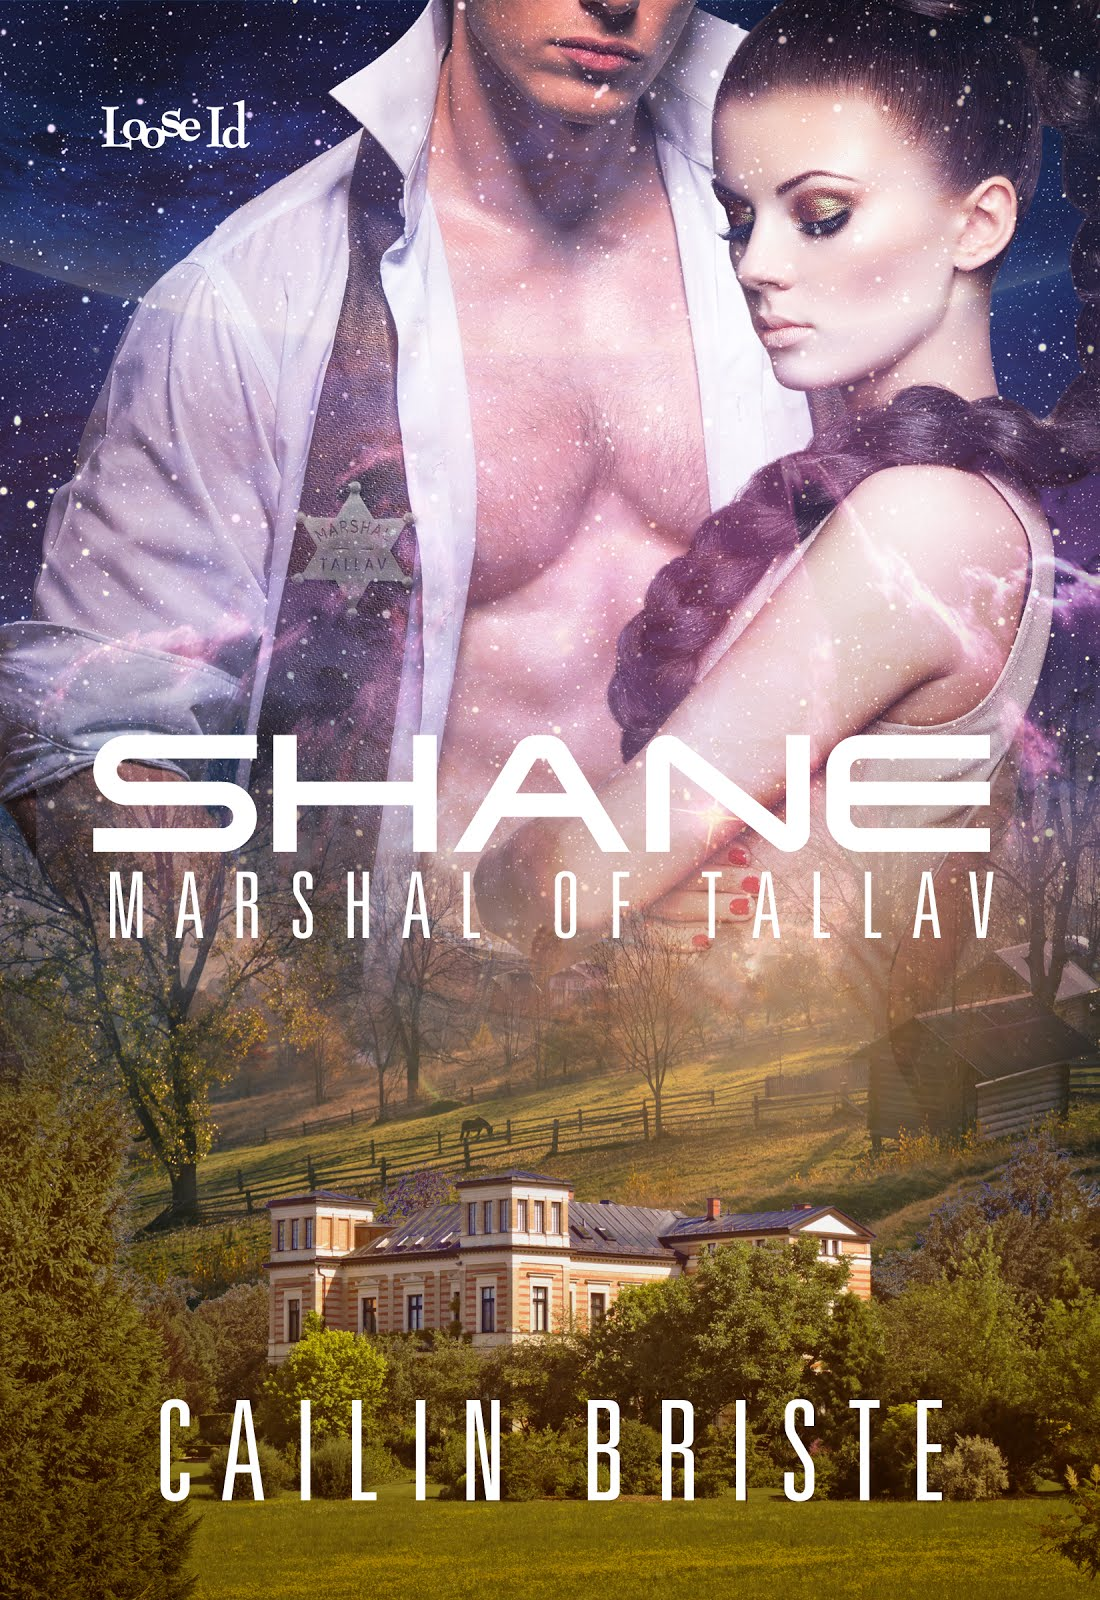 Shane: Marshal of Tallav by Cailin Briste